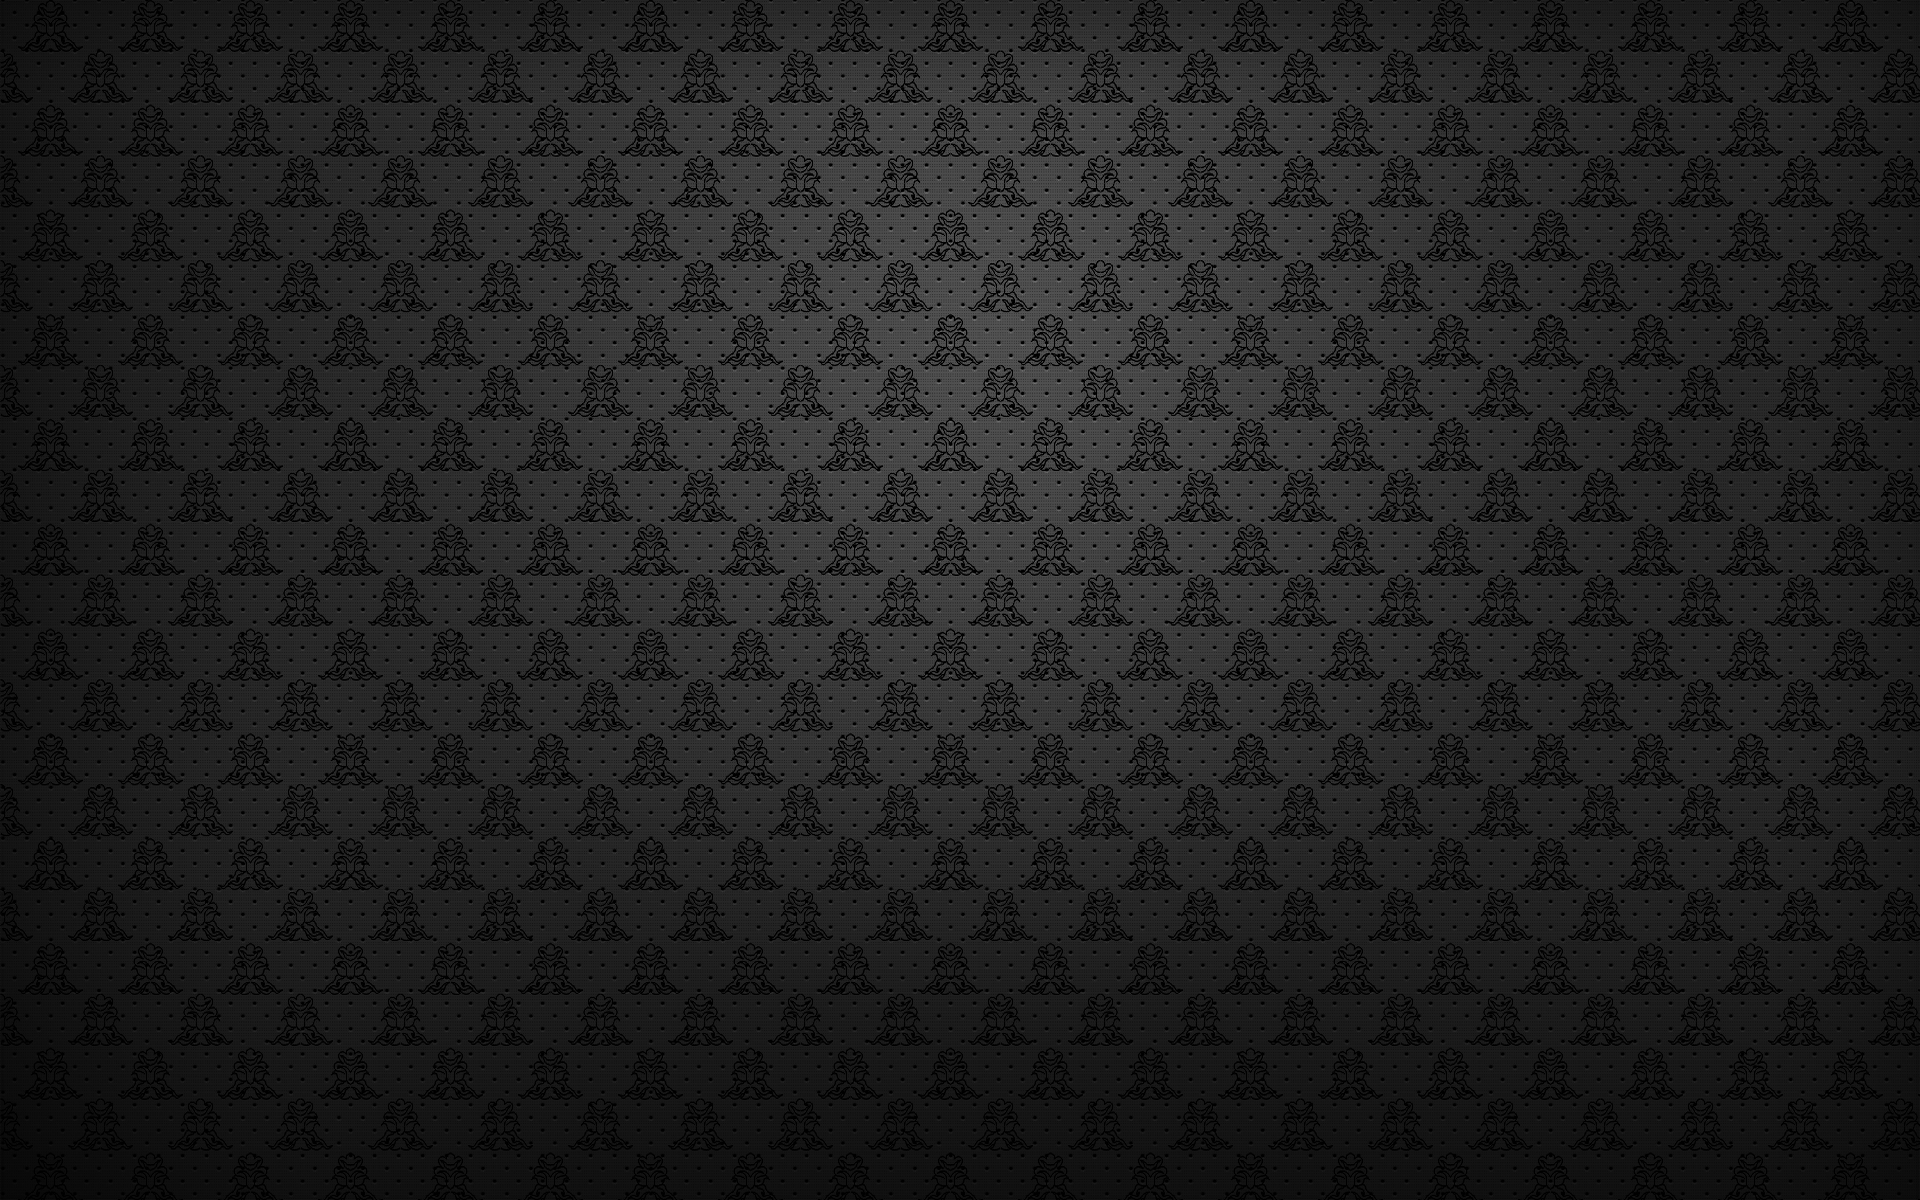 Black Elegant Wallpaper